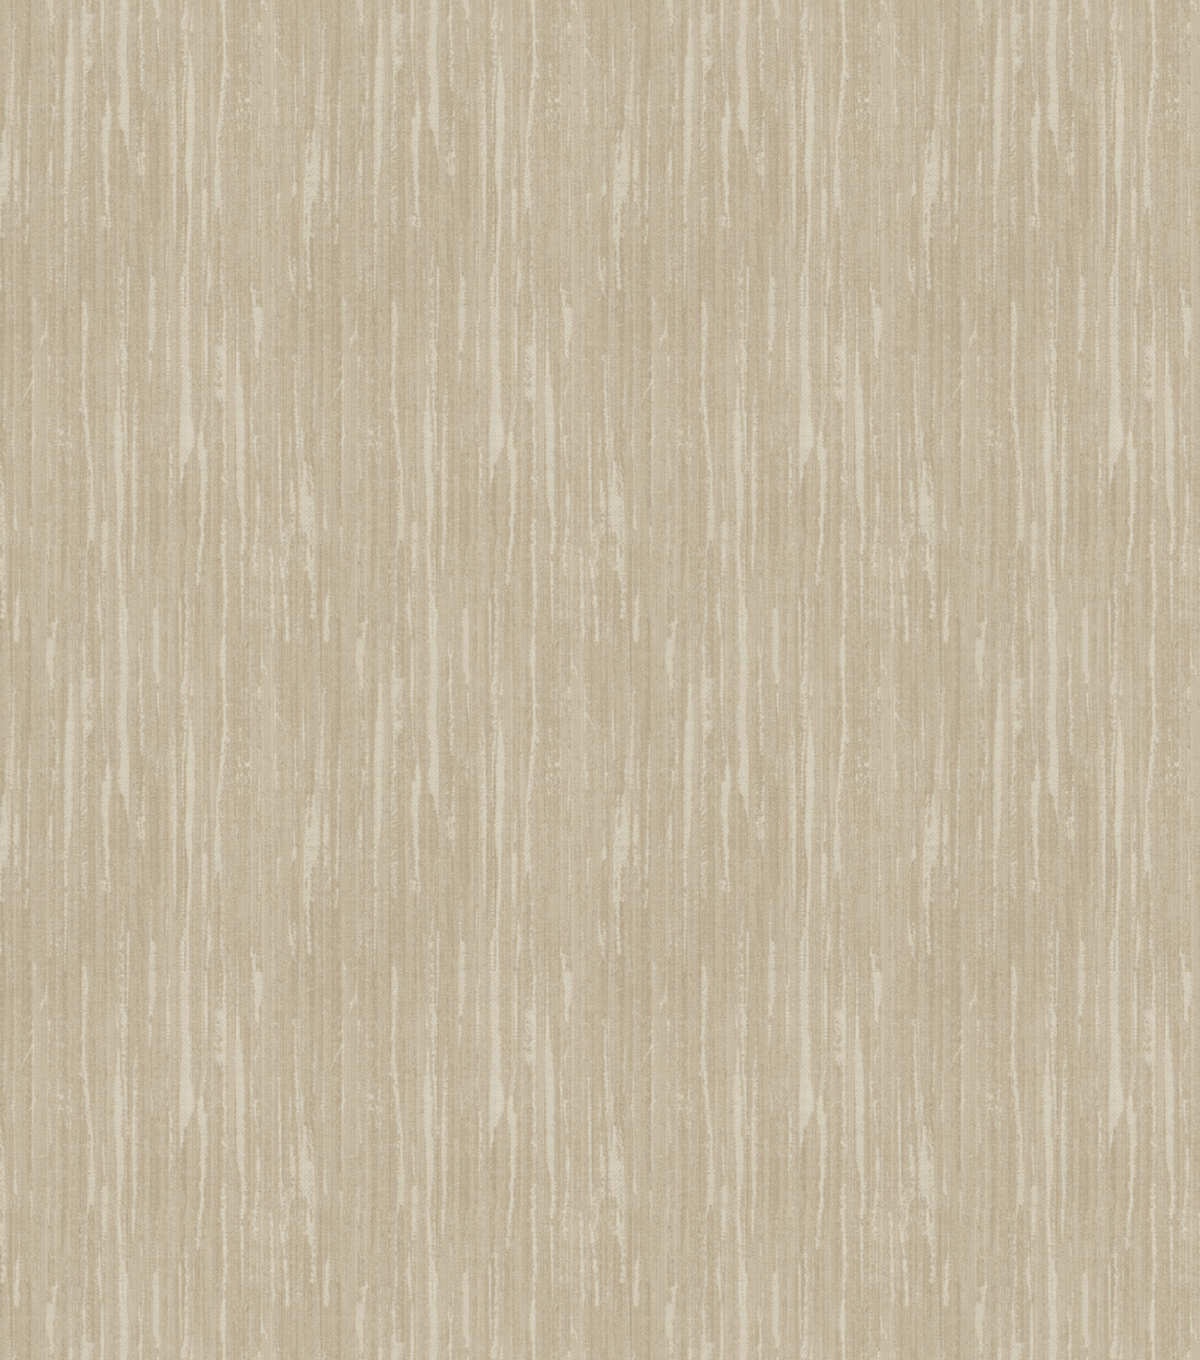 Home Decor 8x8 Fabric Swatch-Eaton Square Garcia Wheat